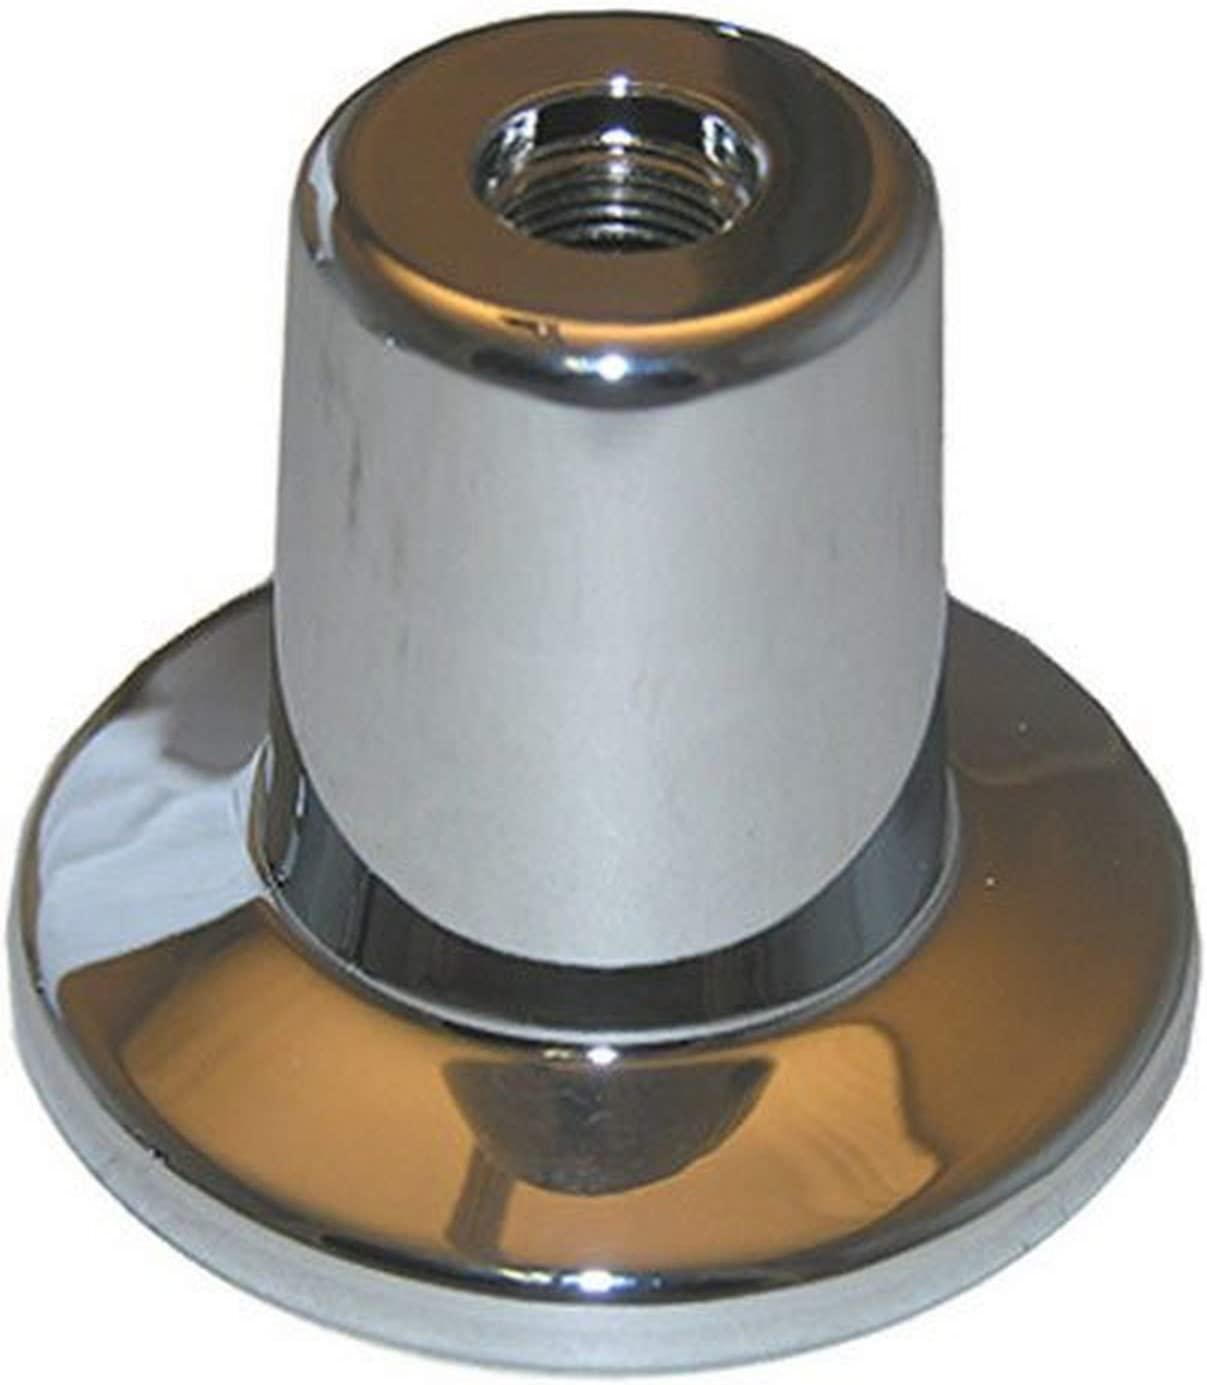 LASCO 03-1759 Chrome Plated Tub and Shower Flange for Central Brass Brand